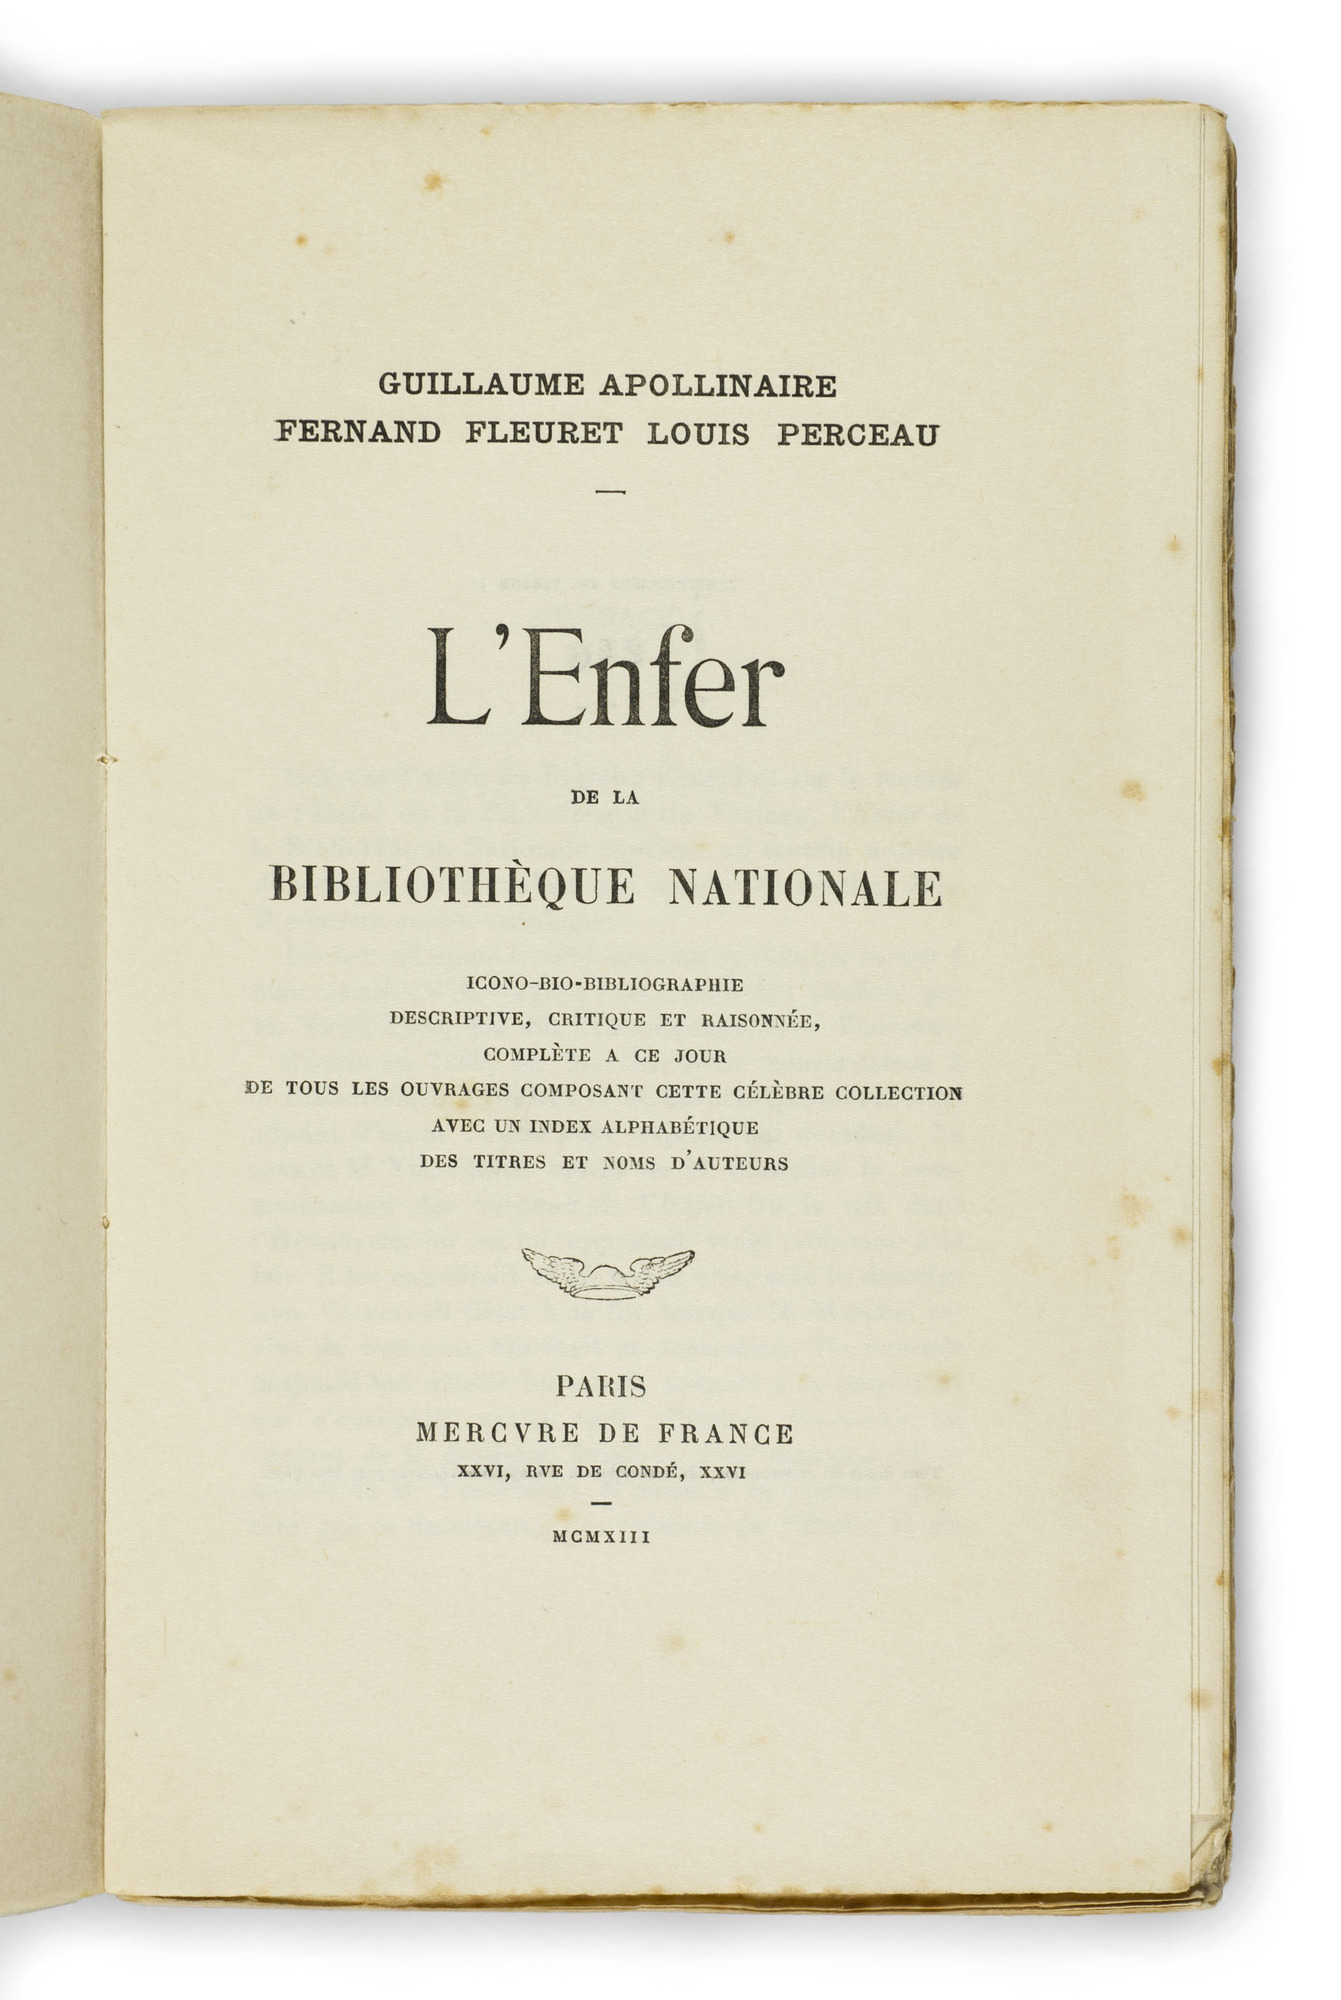 <em>Les Onze Mille Verges</em> (1907?) and <em>L'Enfer de la Bibliothèque nationale</em> (1913) by Guillaume Apollinaire